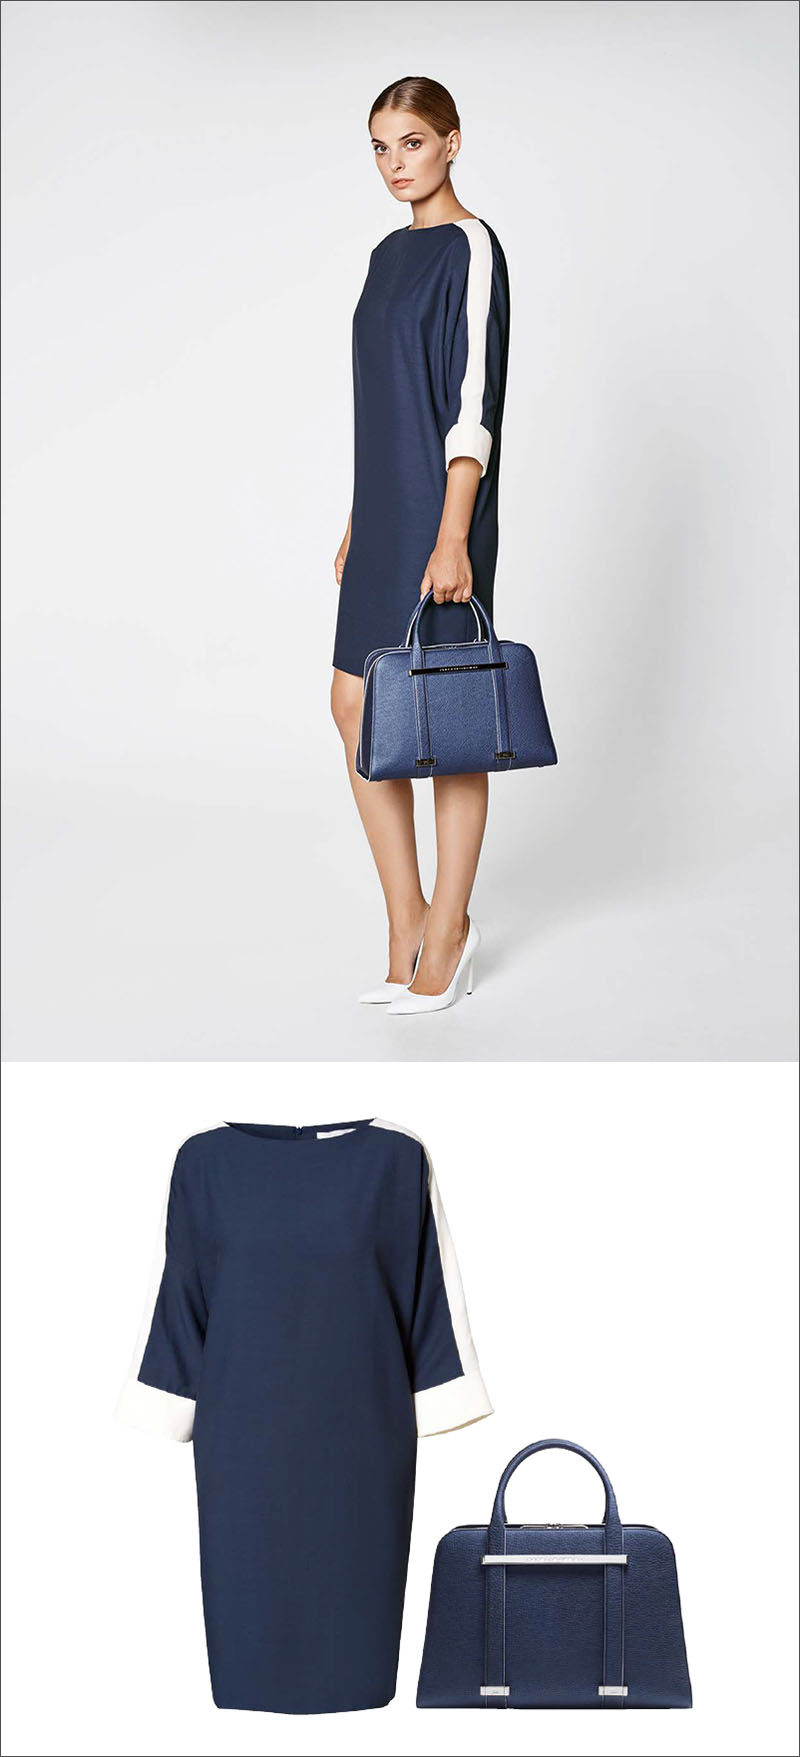 Women's Fashion Ideas - 12 Womens Outfits From Porsche Design's 2017 Spring/Summer Collection // A navy and white boat neck dress is paired with a navy purse in this simple women's outfit.